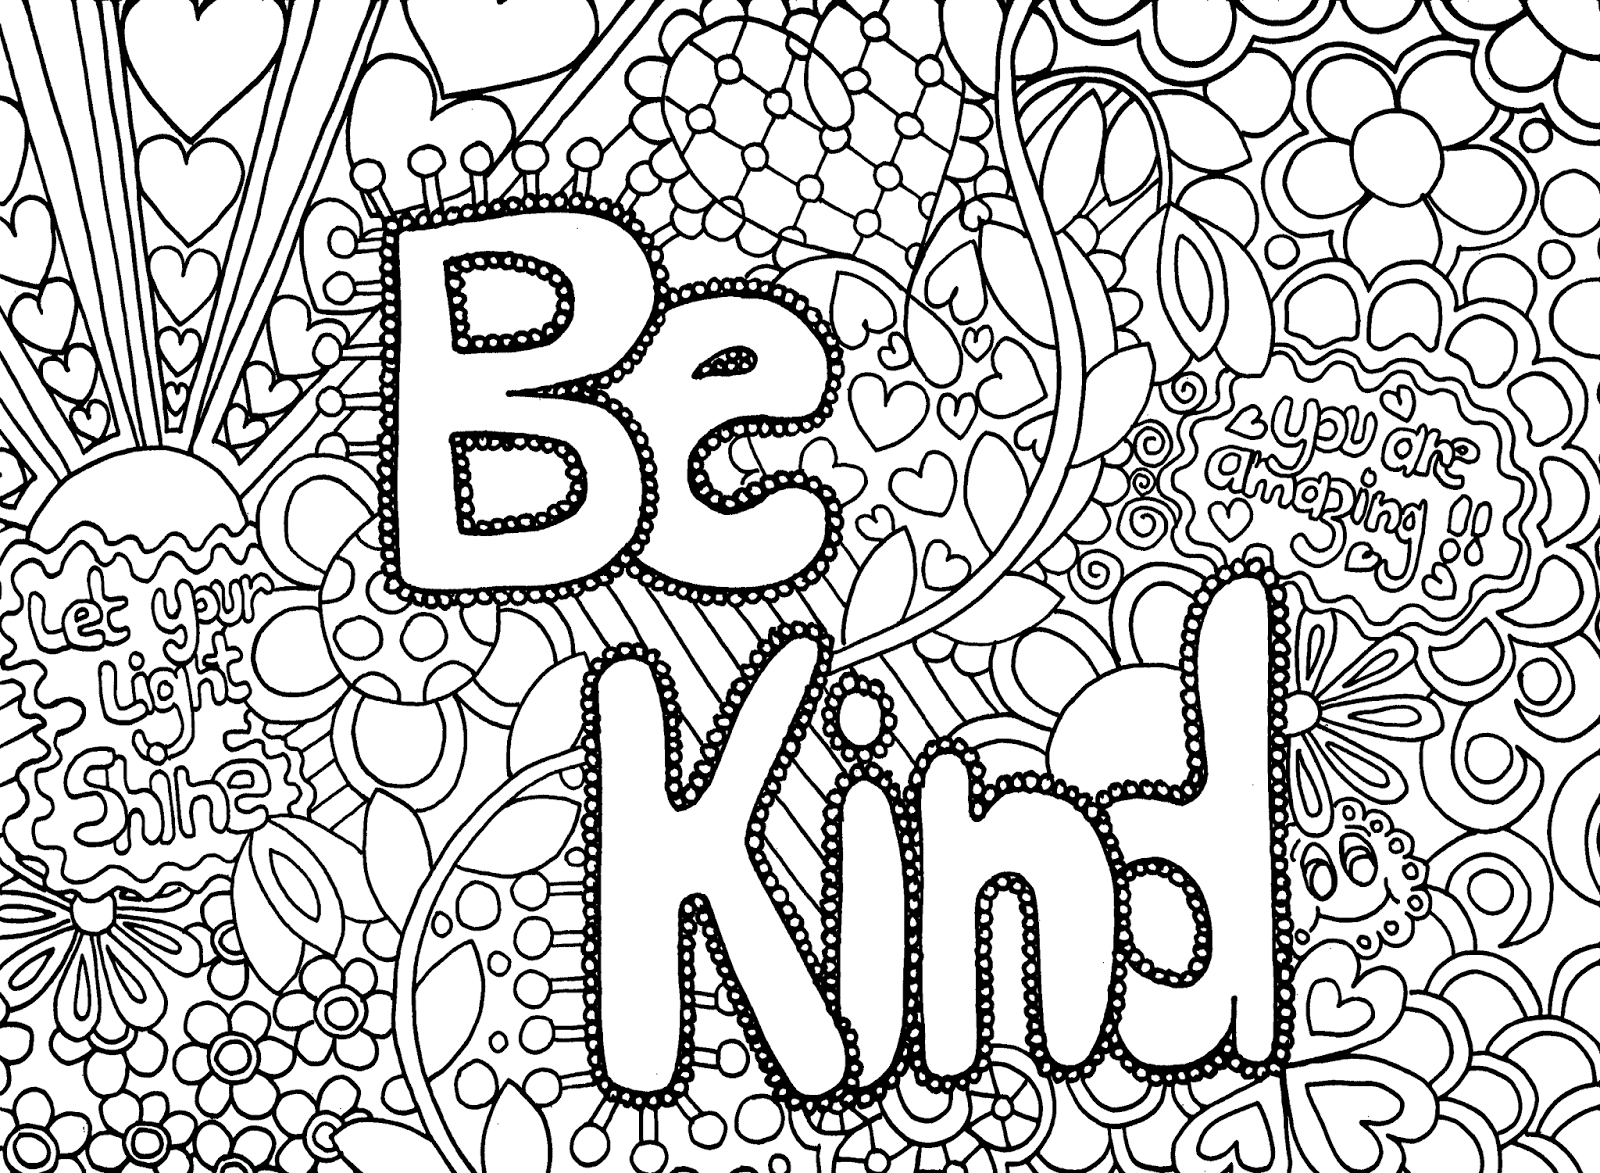 1600x1173 Coloring Pages Teen Detailed For Teenage Girls Download Printable